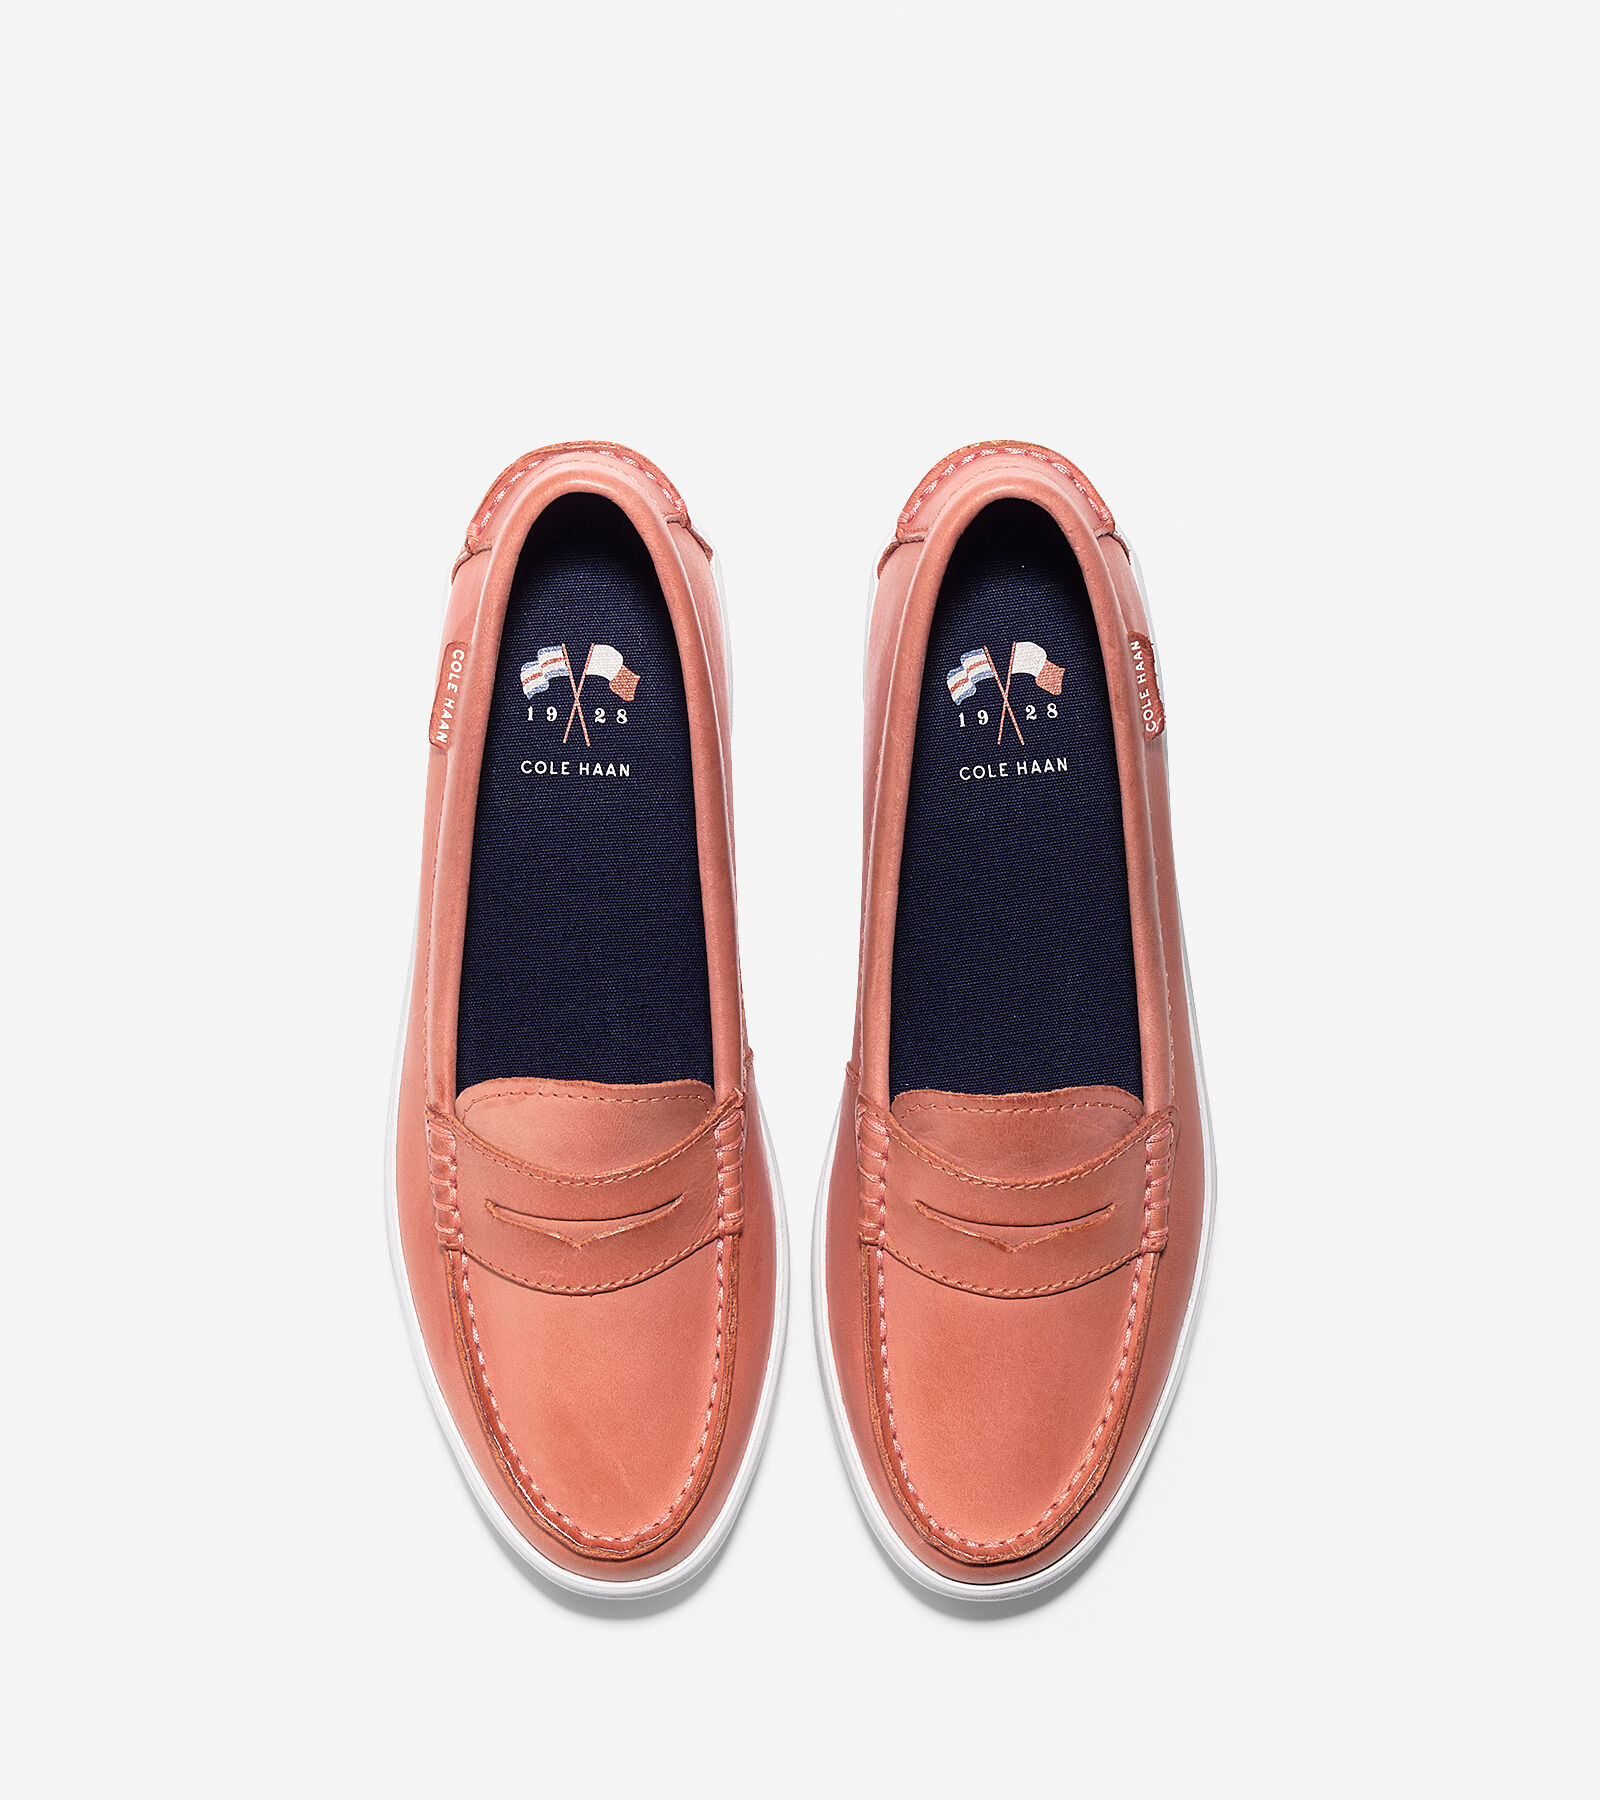 Women's Nantucket Loafer; Women's Nantucket Loafer; Women's Nantucket  Loafer; Women's Nantucket Loafer. #colehaan